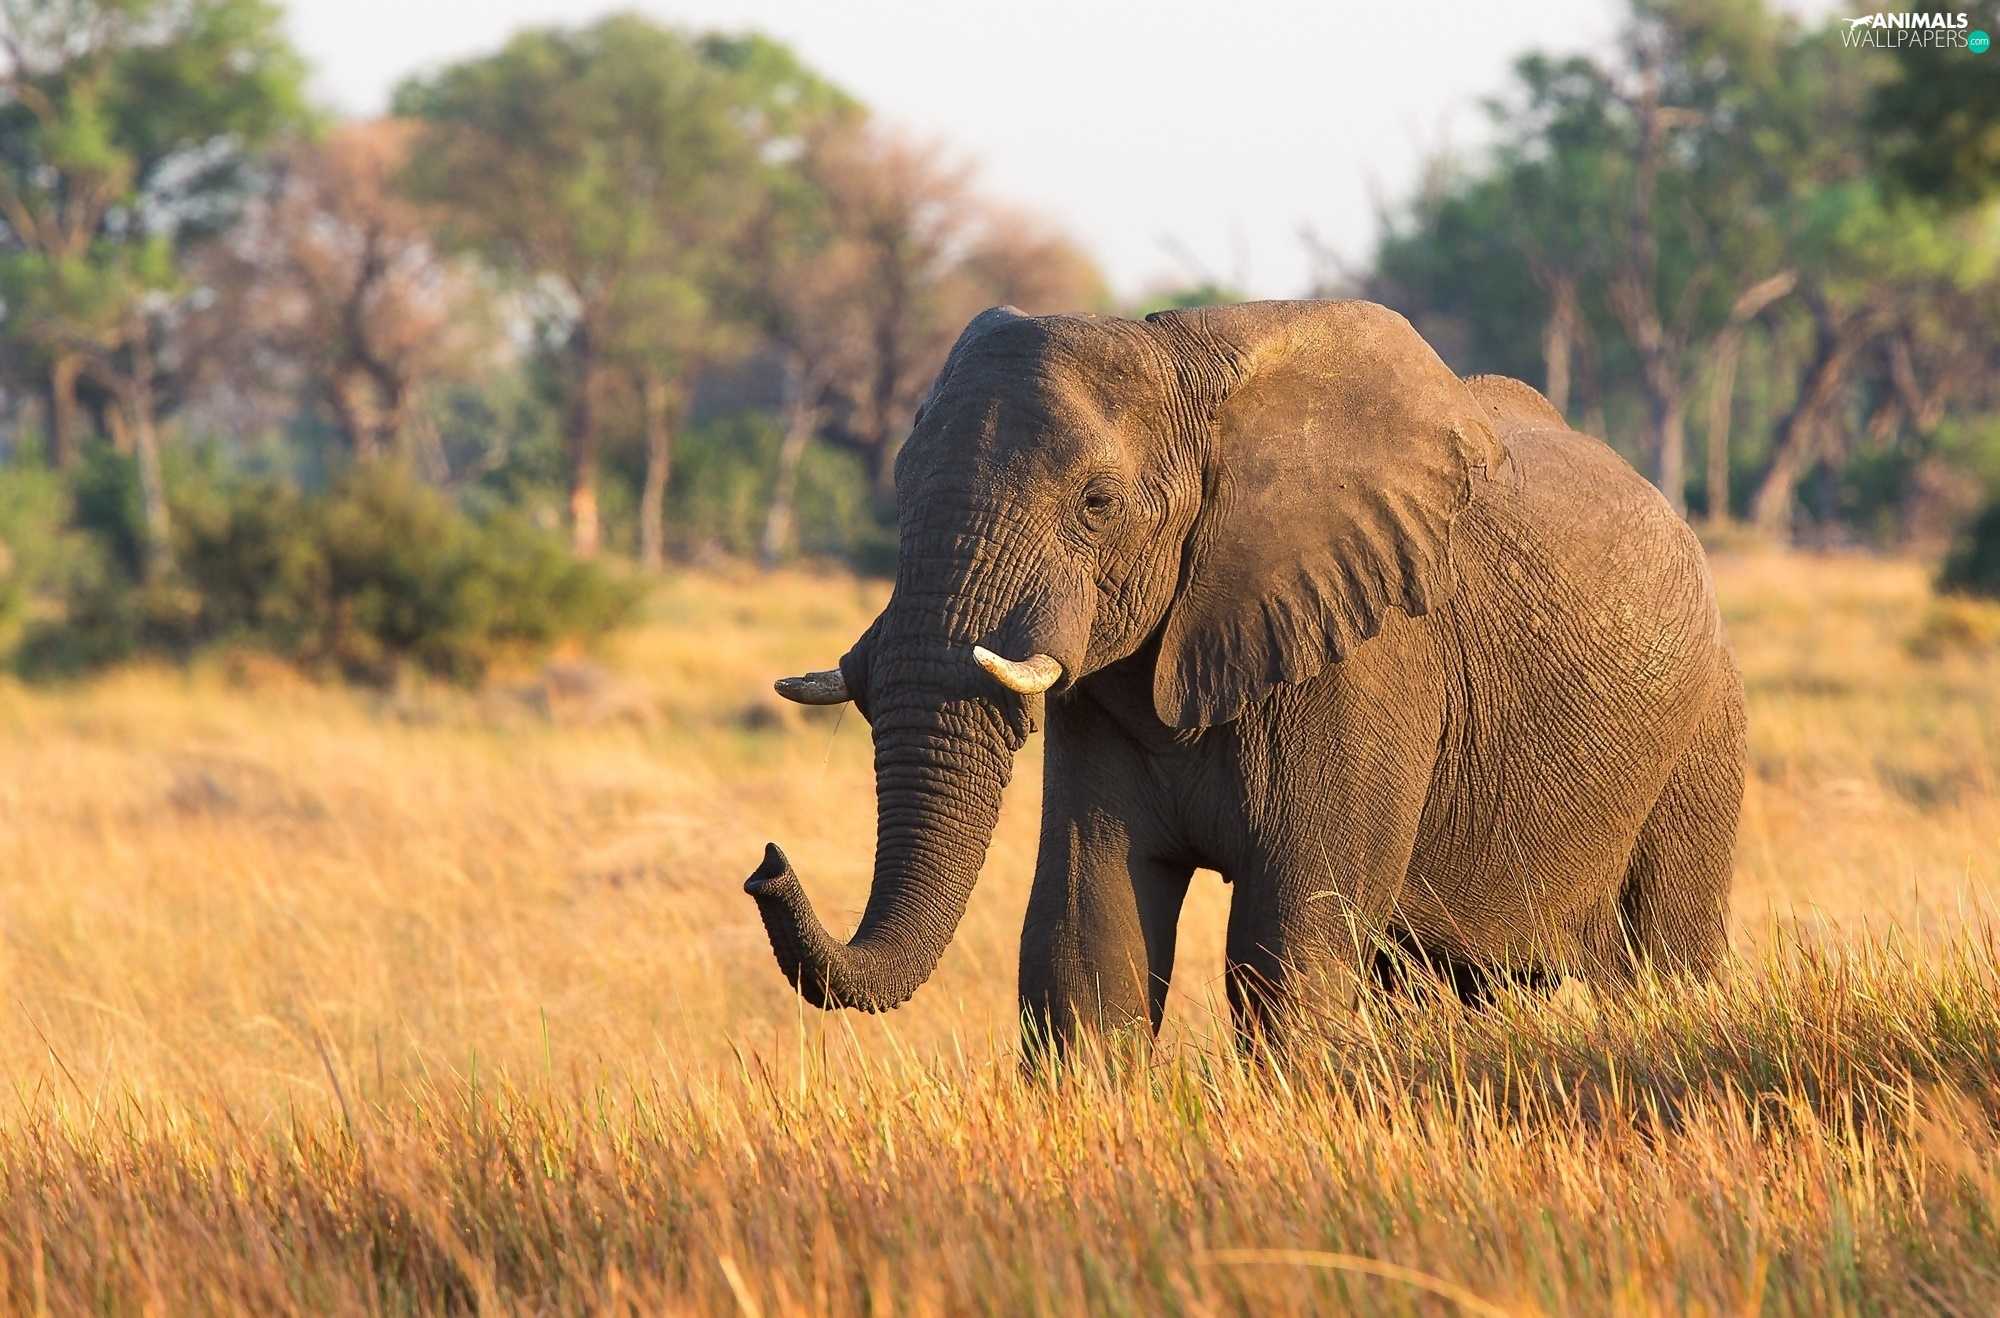 savanna, Elephant, grass